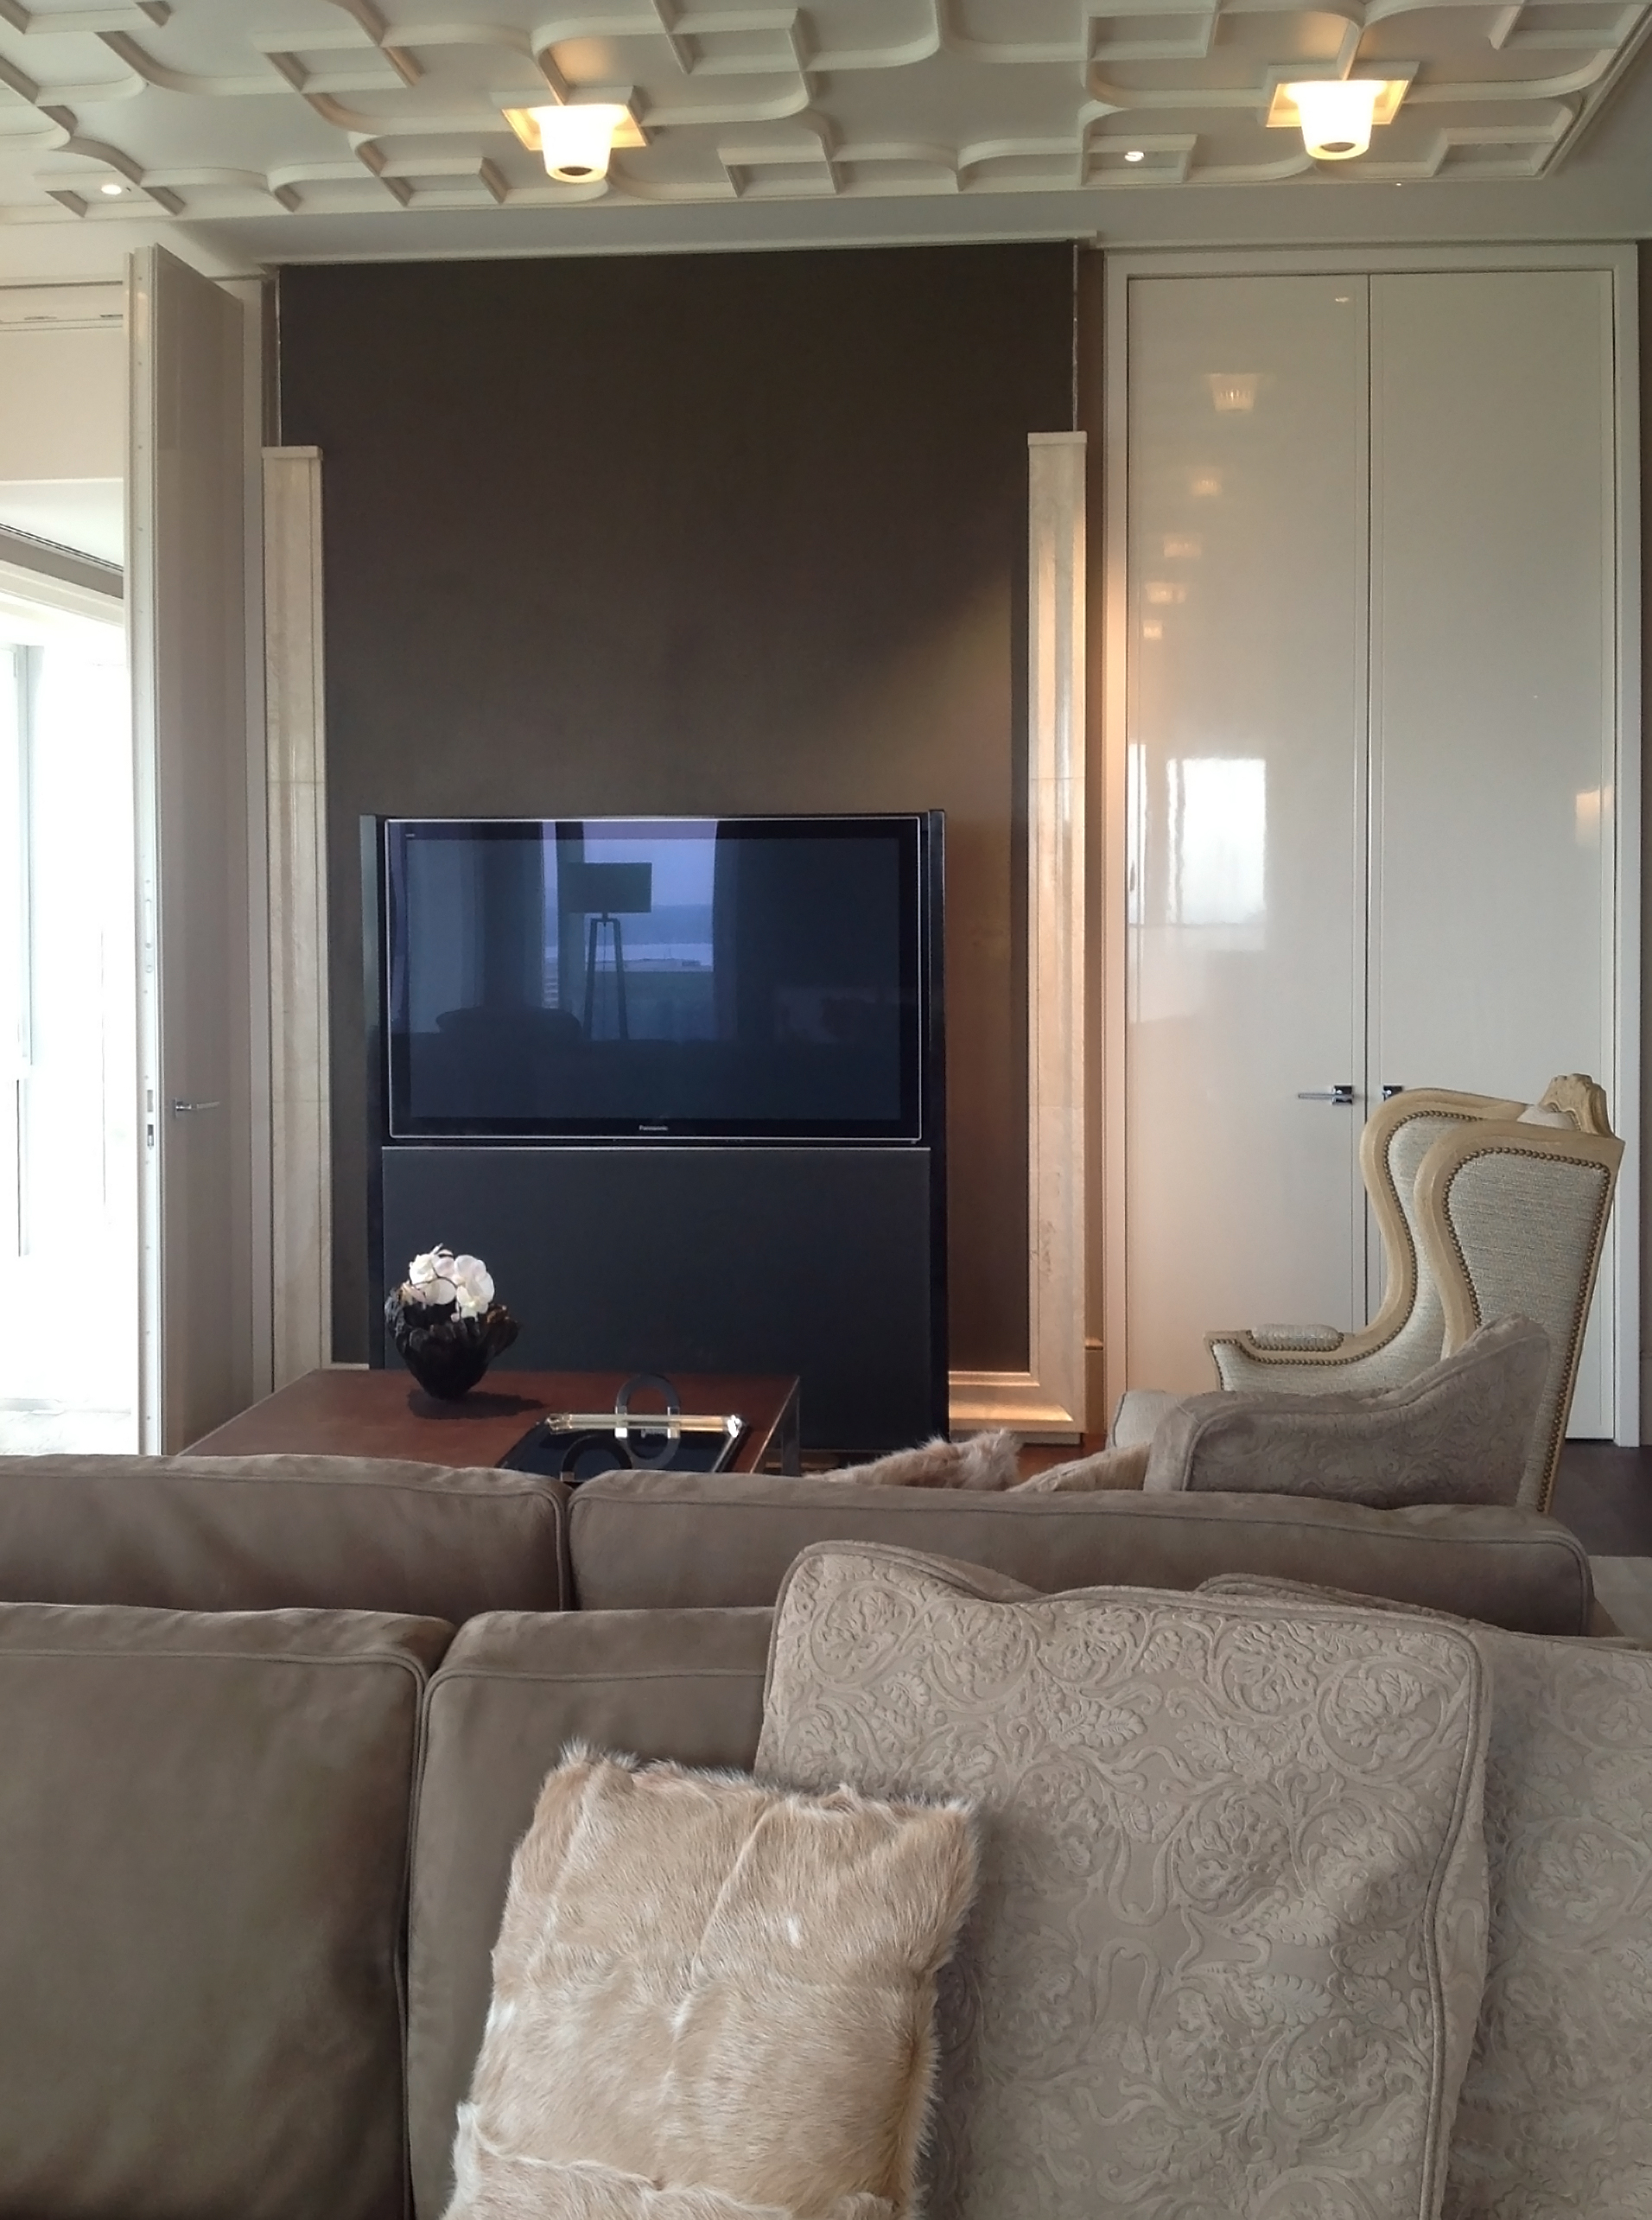 ....hotel project with chinese furniture : bespoke tv stand..酒店项目置有中式家具 :特别定制设计电视机架....